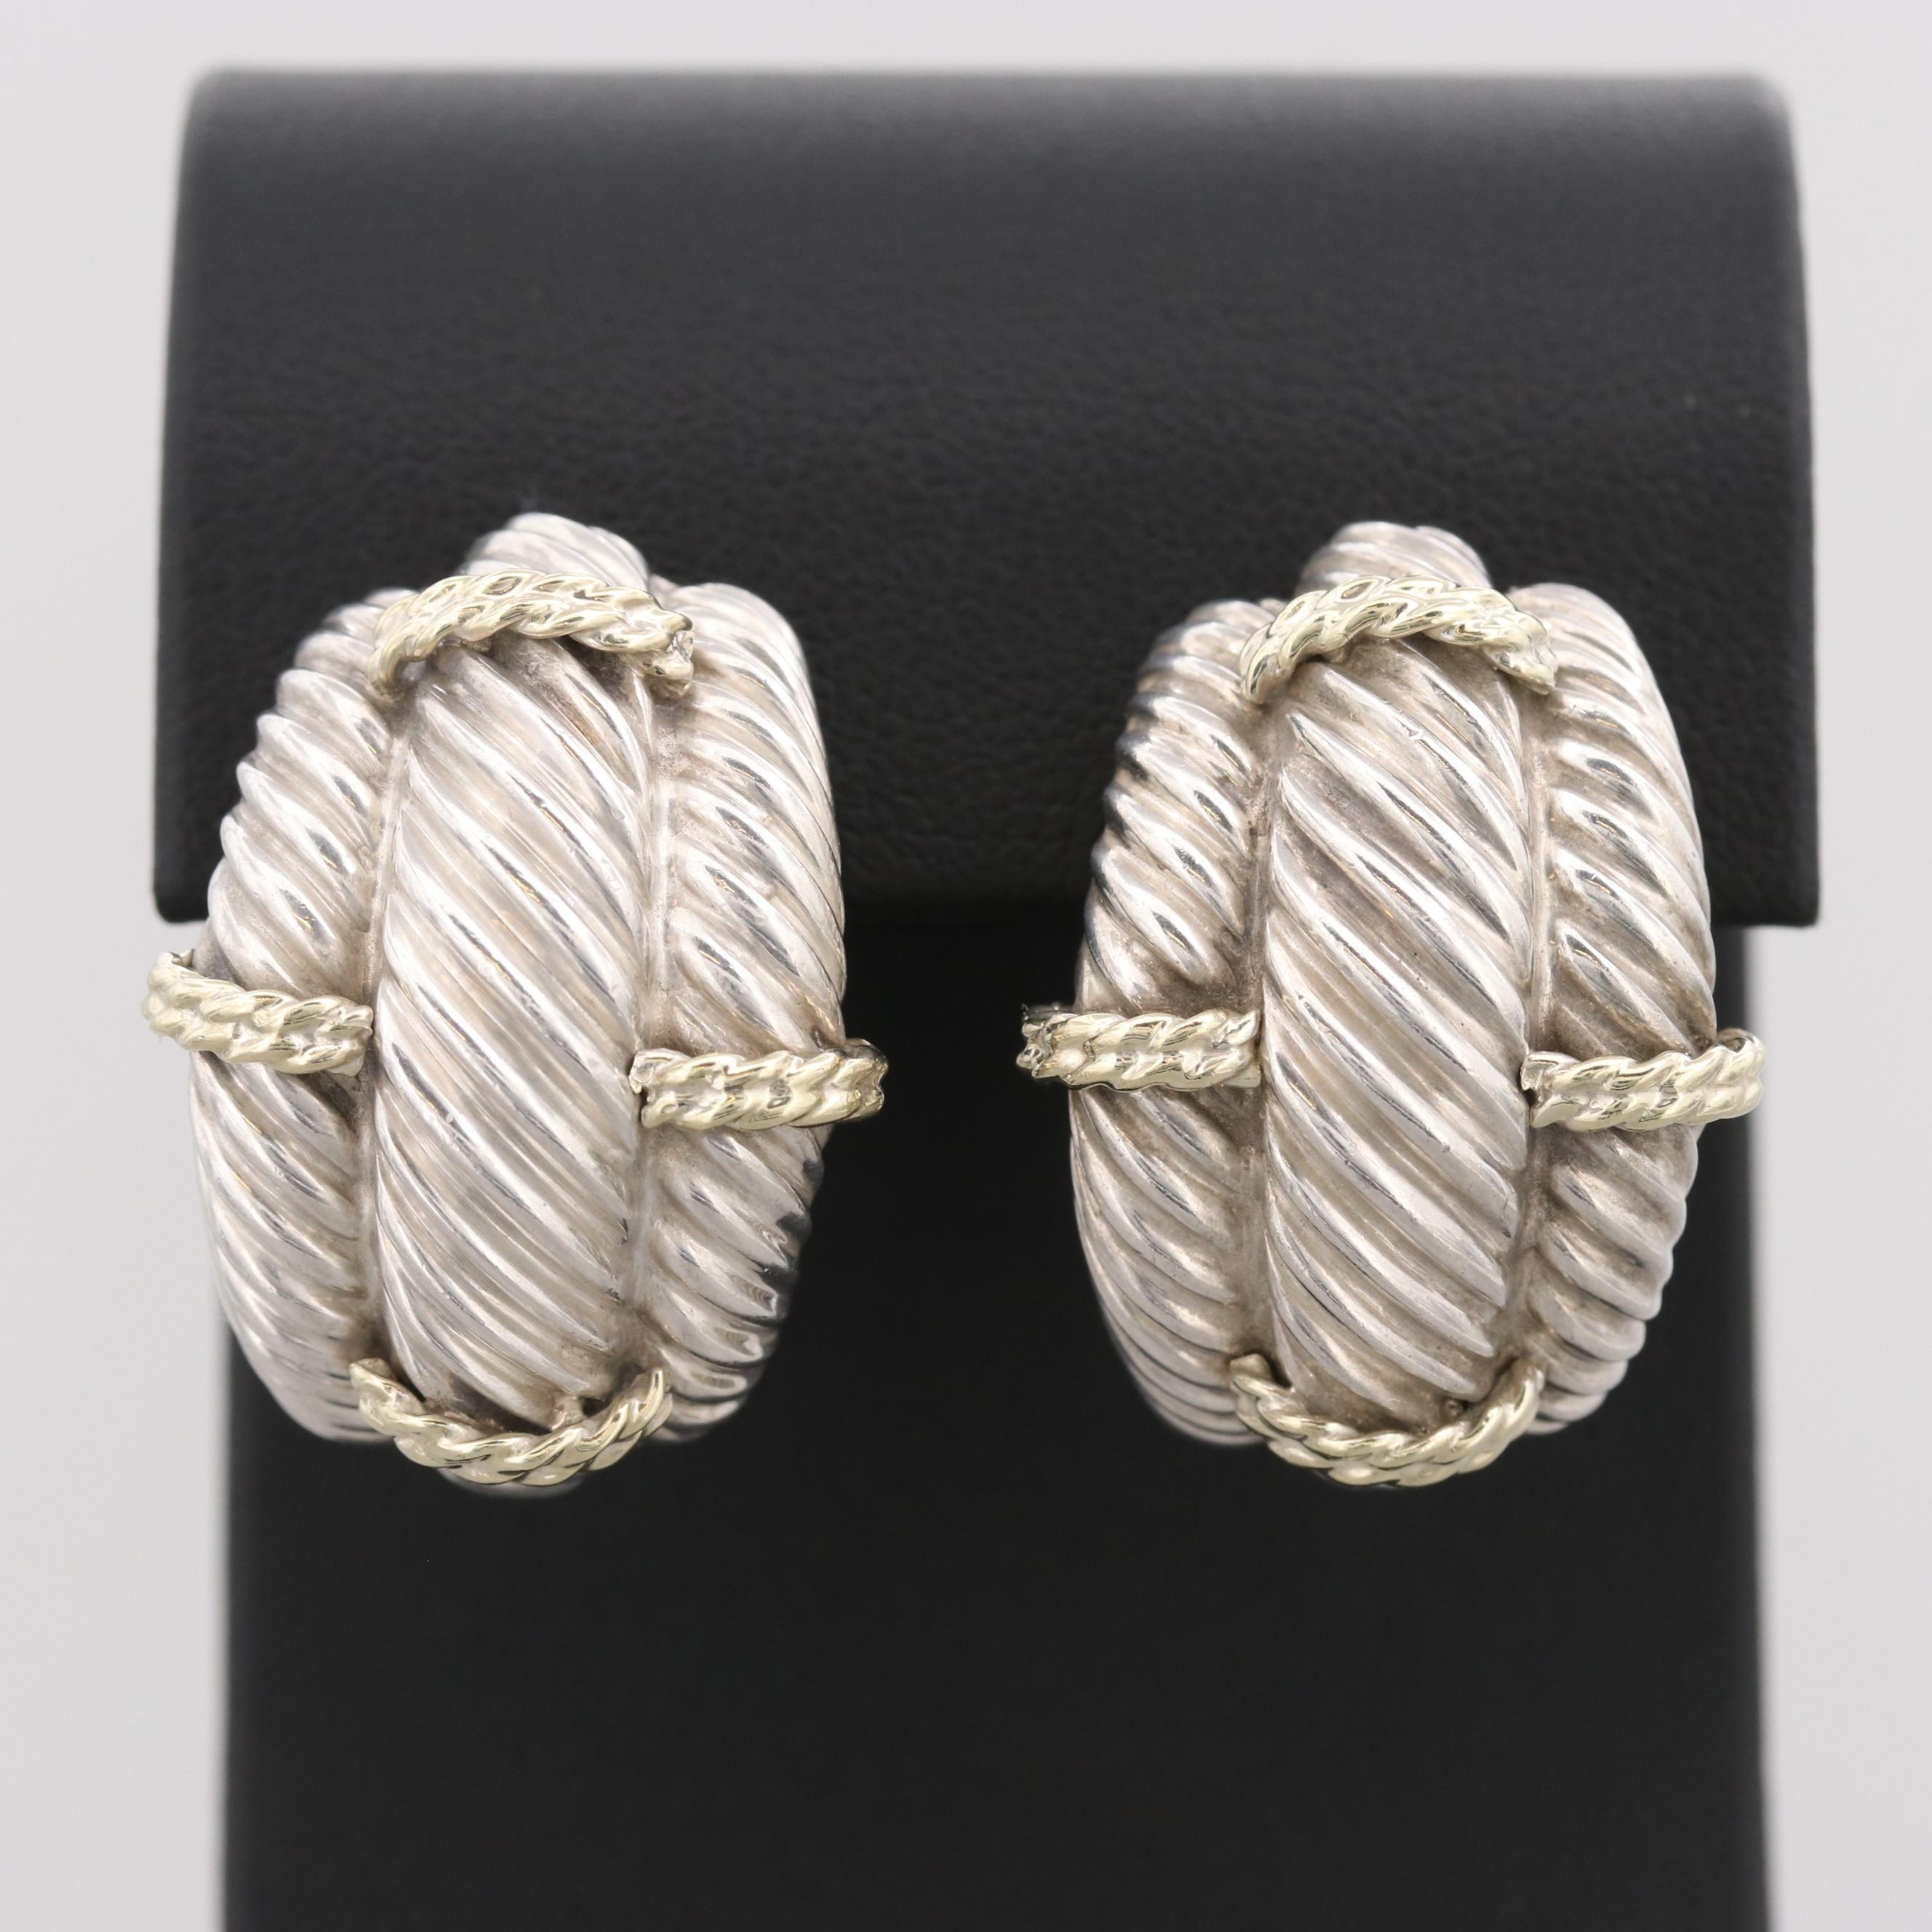 David Yurman Sterling Silver Earrings with 14K Yellow Gold Accents